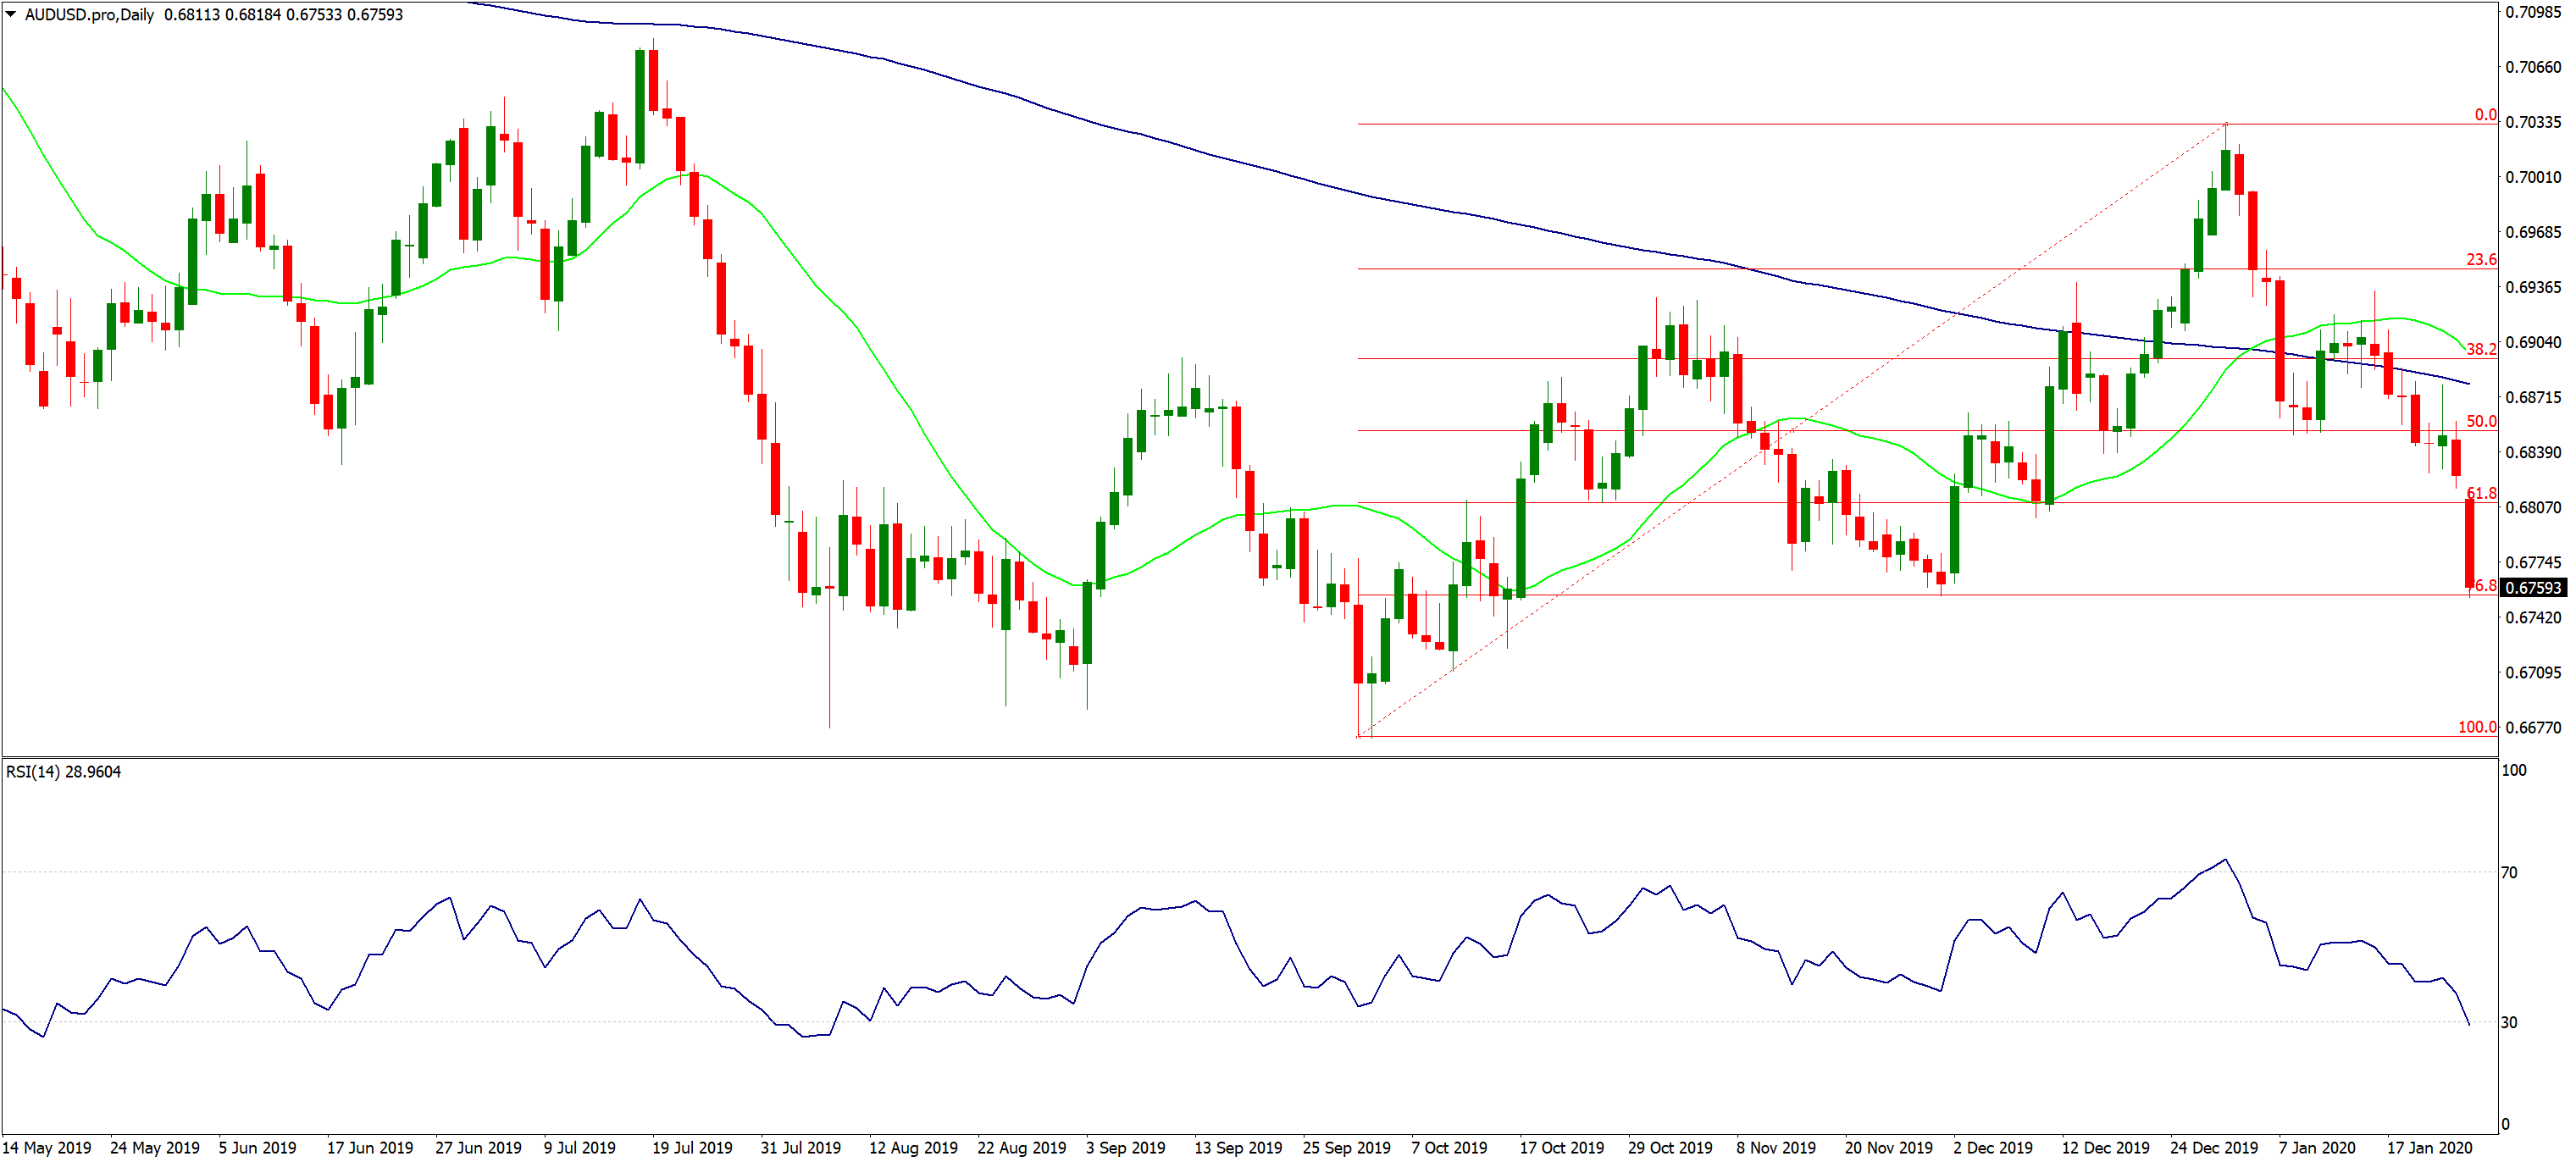 AUDUSD.pro Daily, Source: AxiTrader